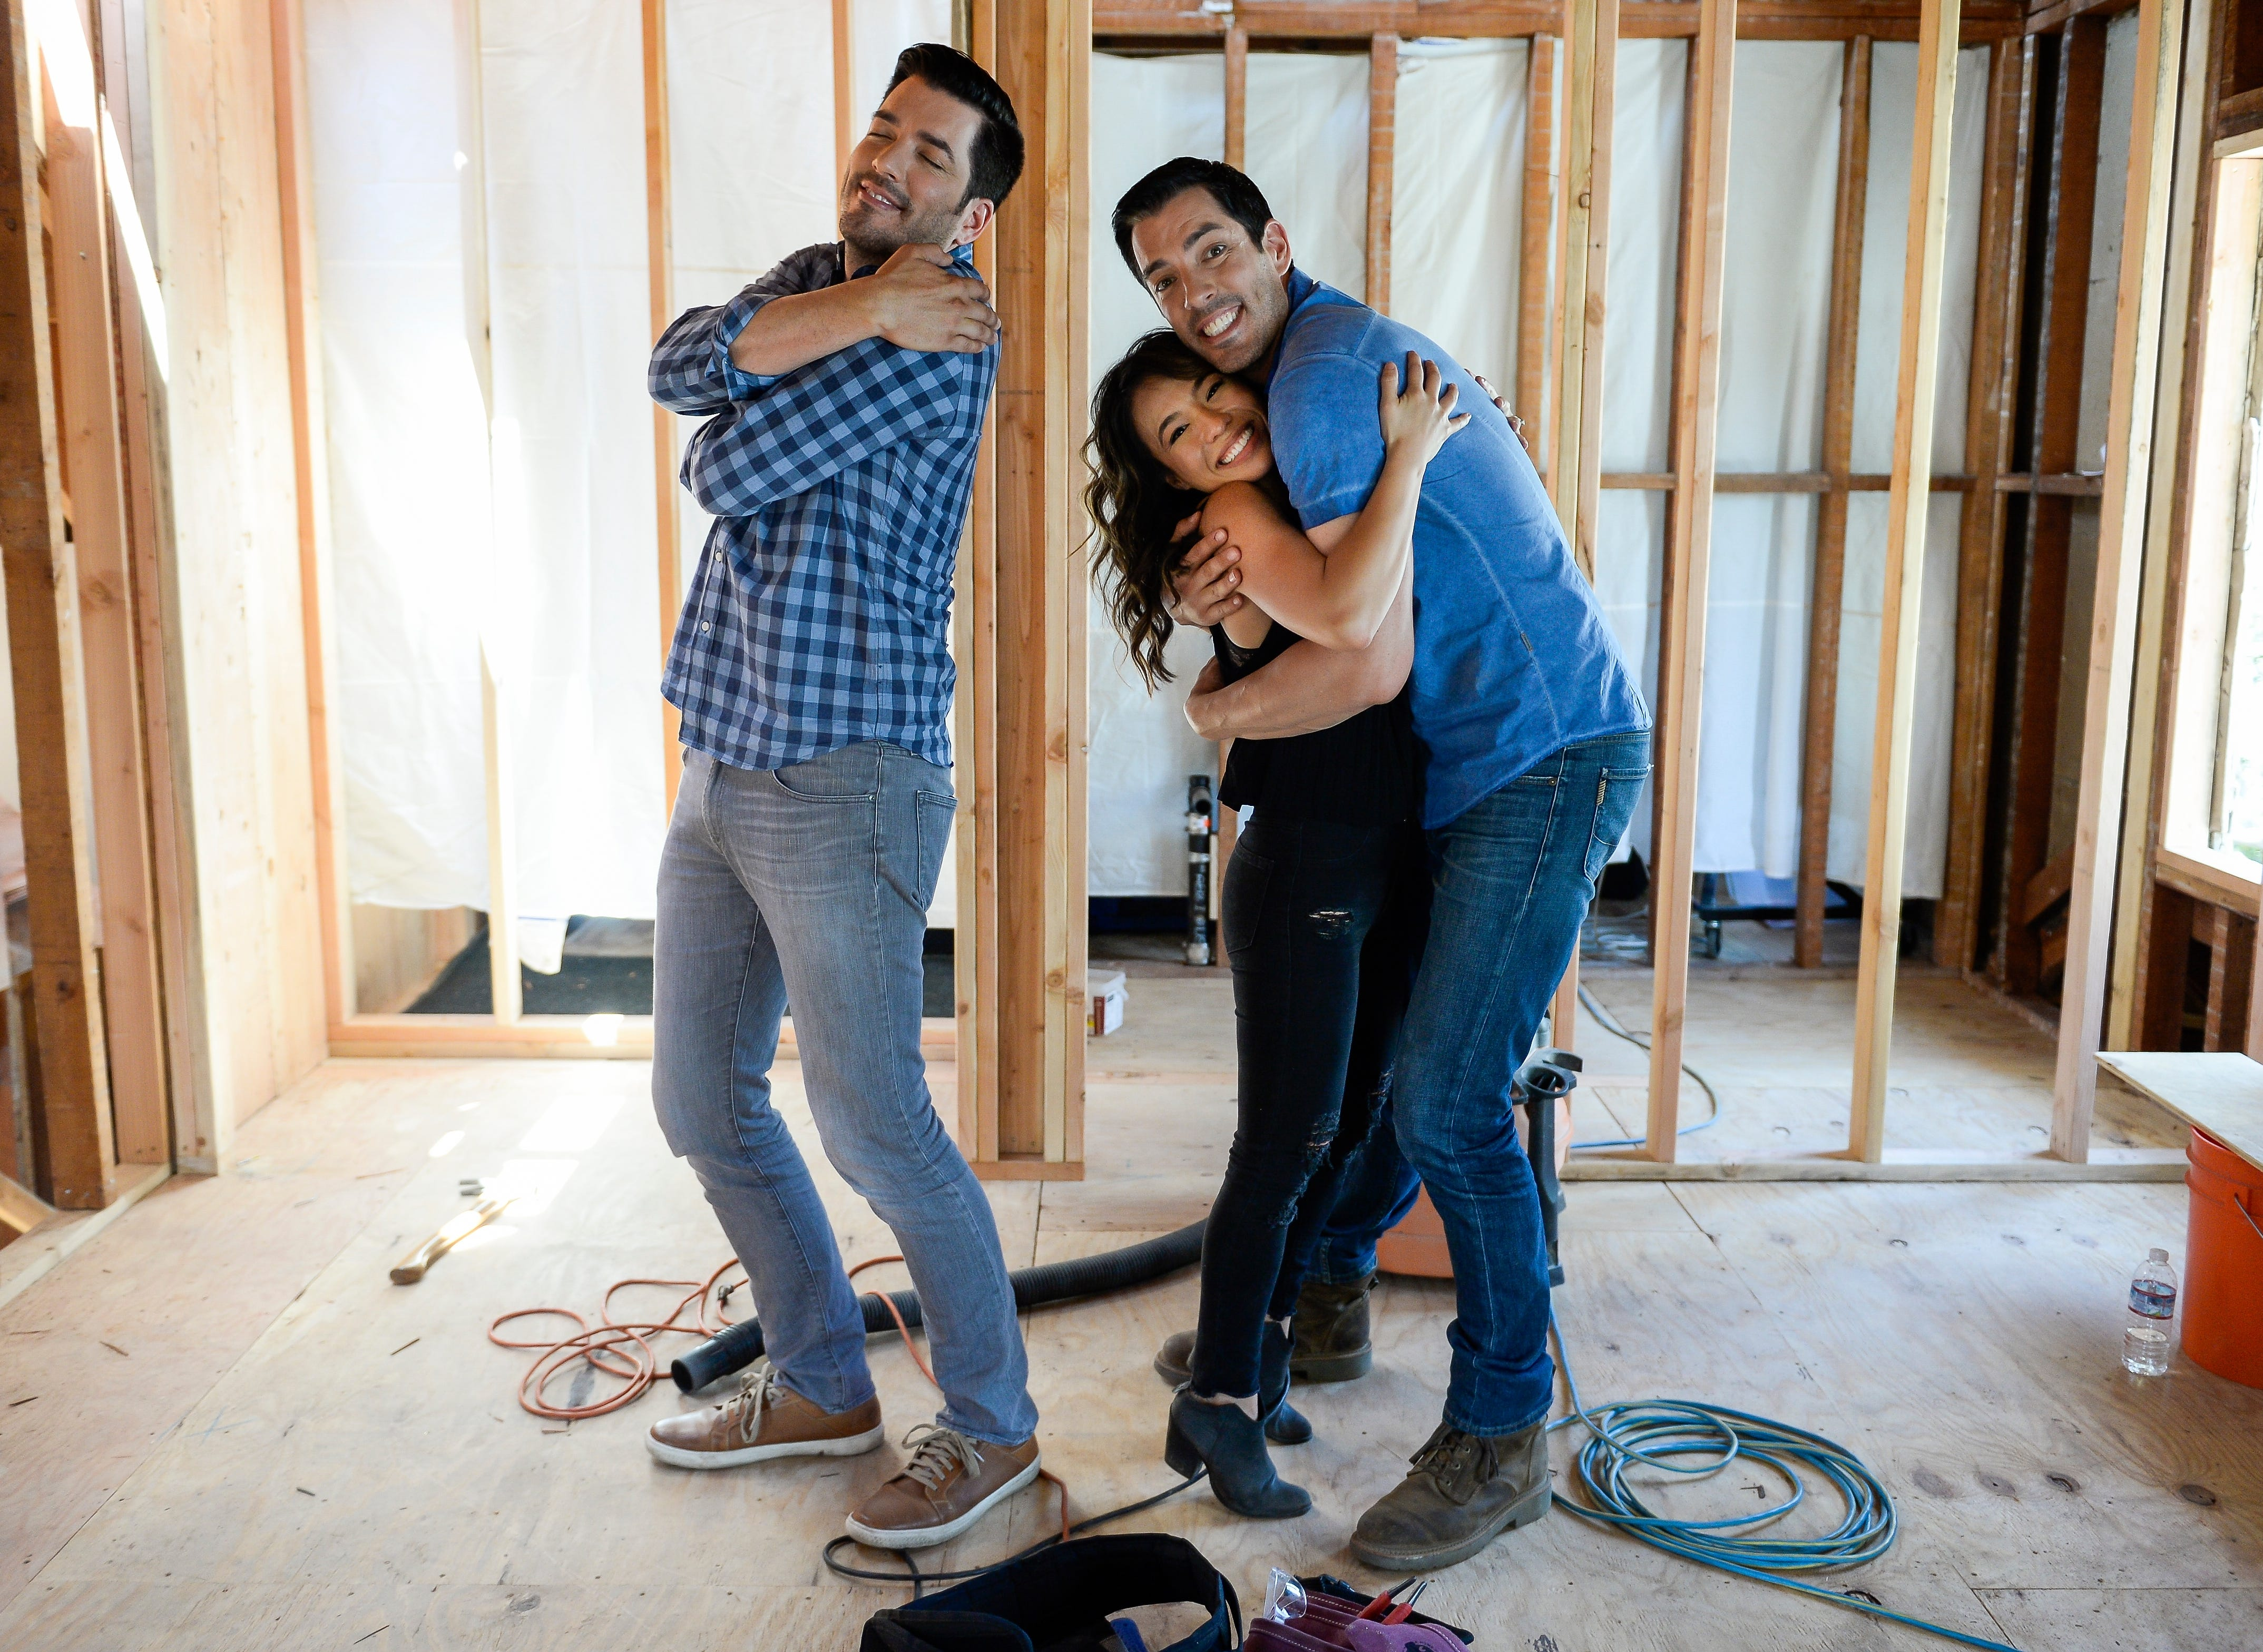 39 property brothers 39 go inside 39 drew 39 s for How tall are the property brothers